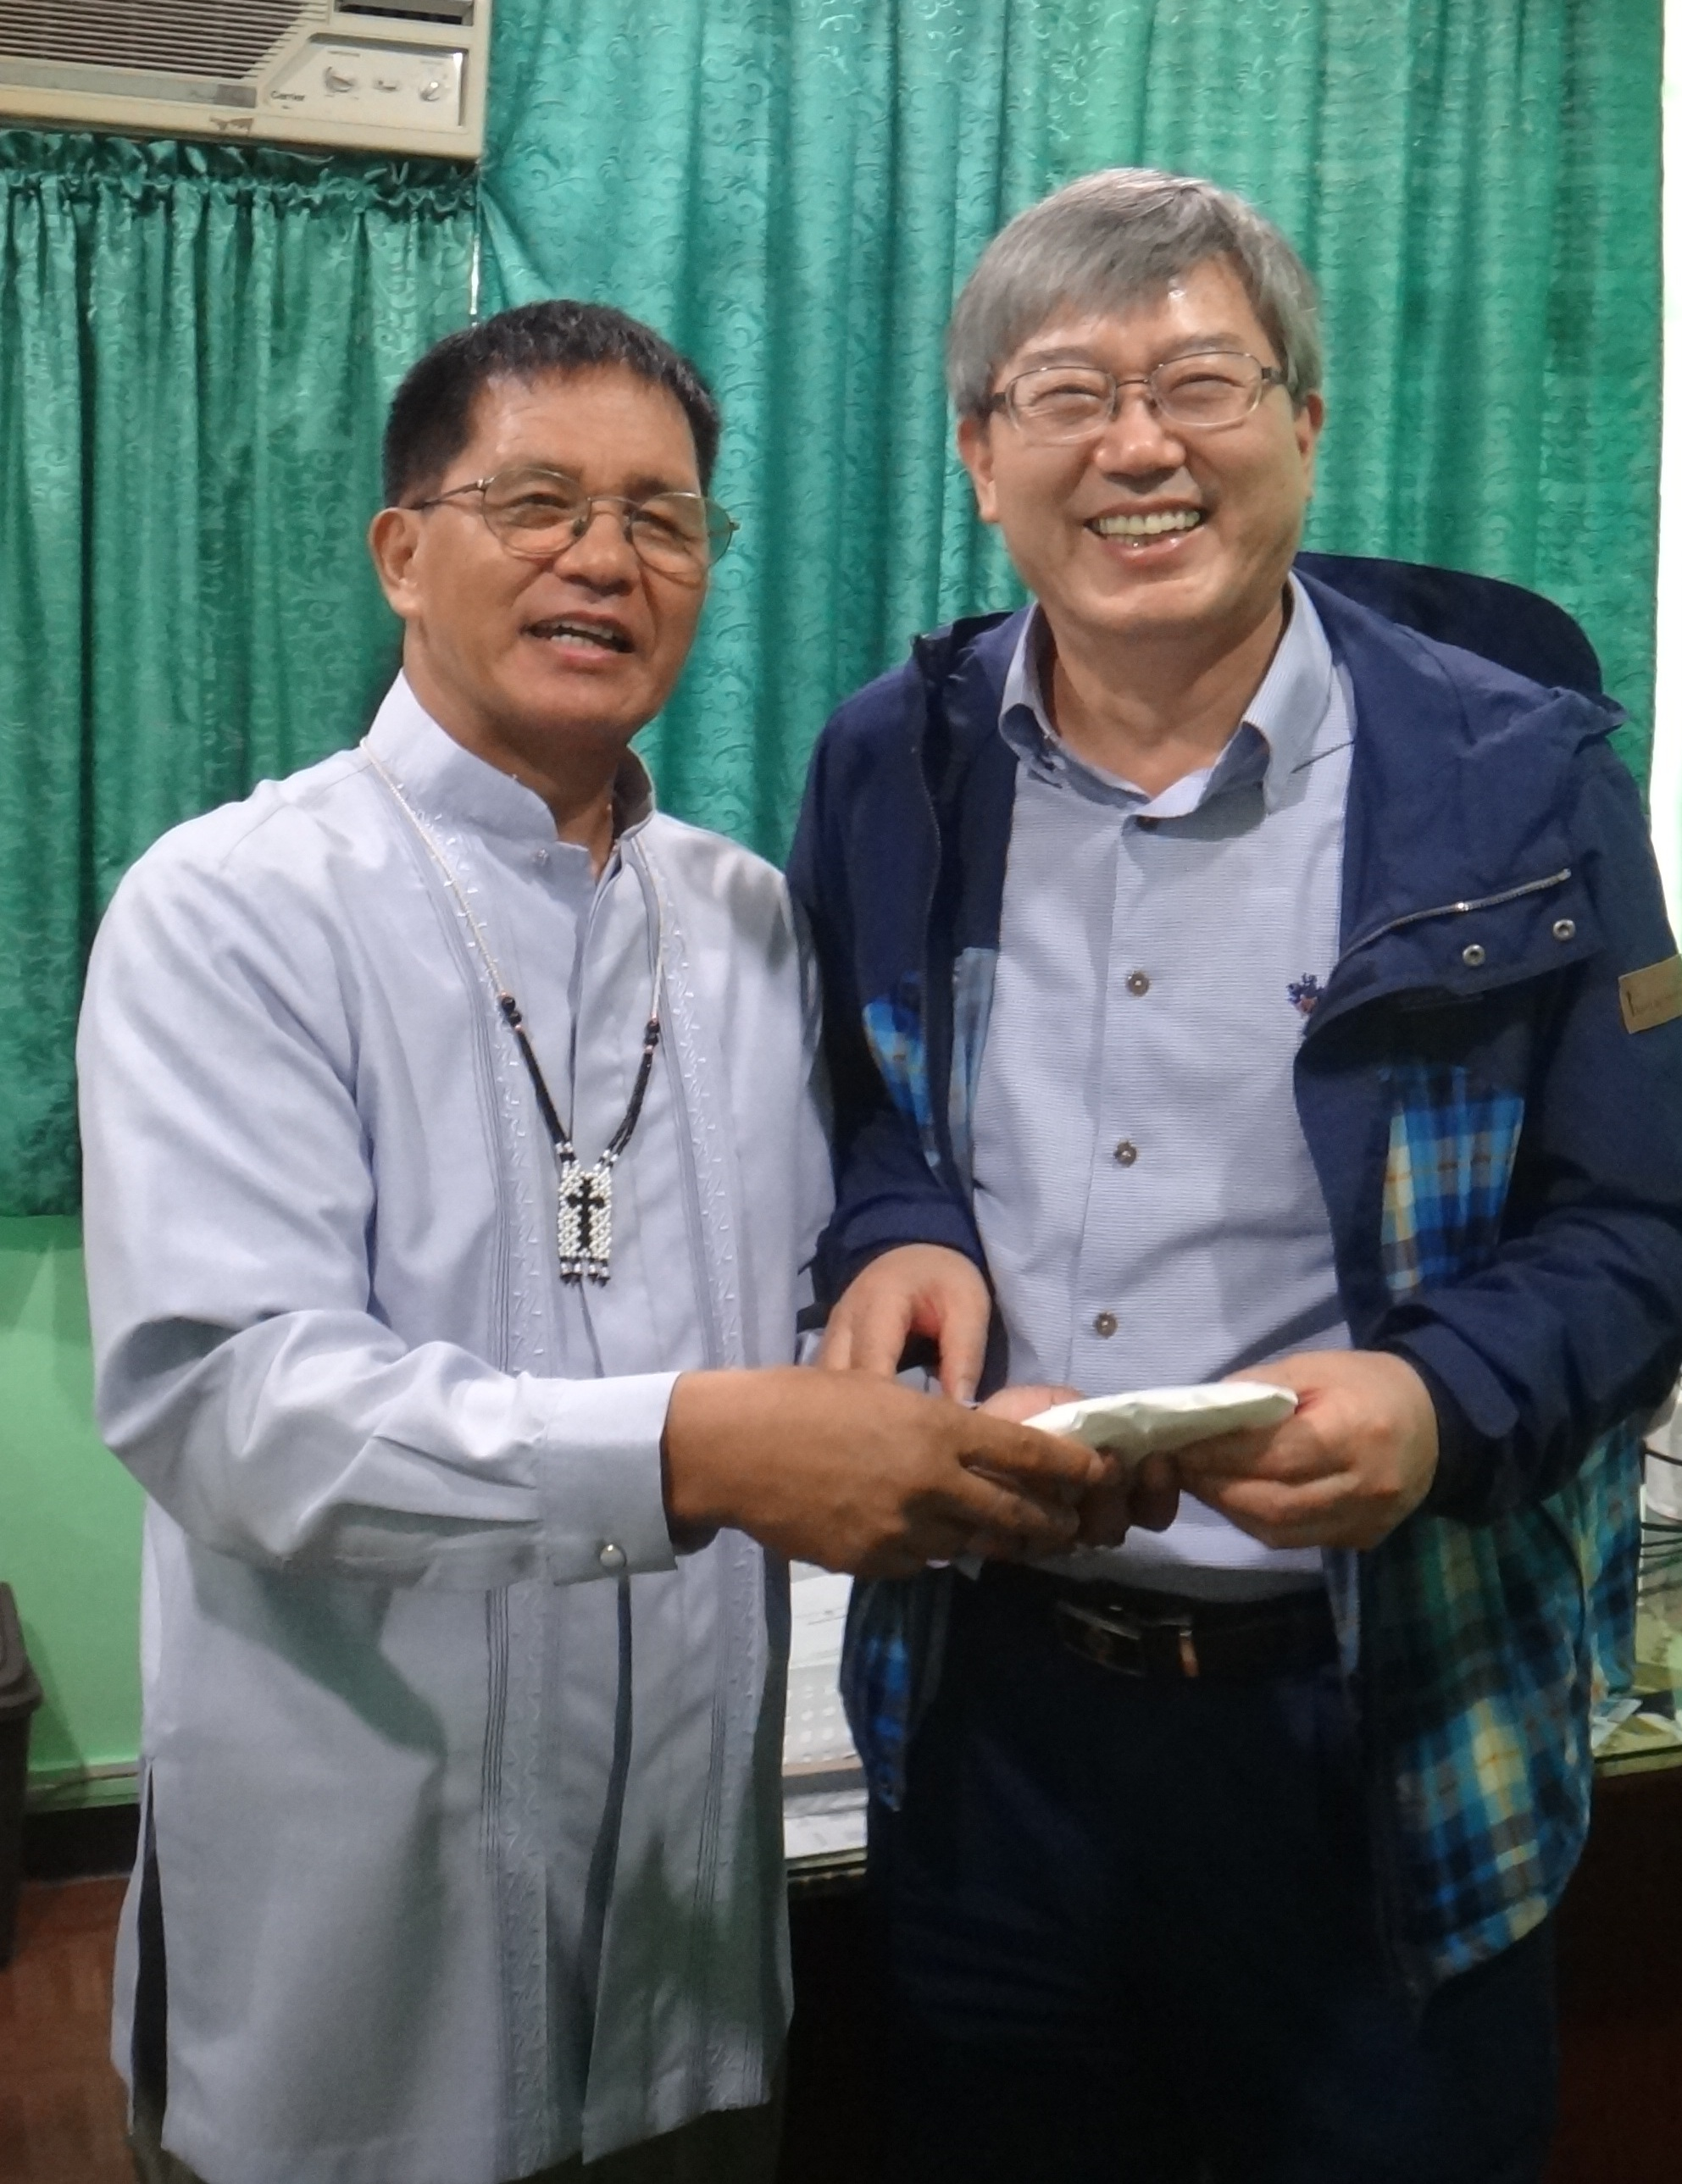 PB and the Archbishop of Korea